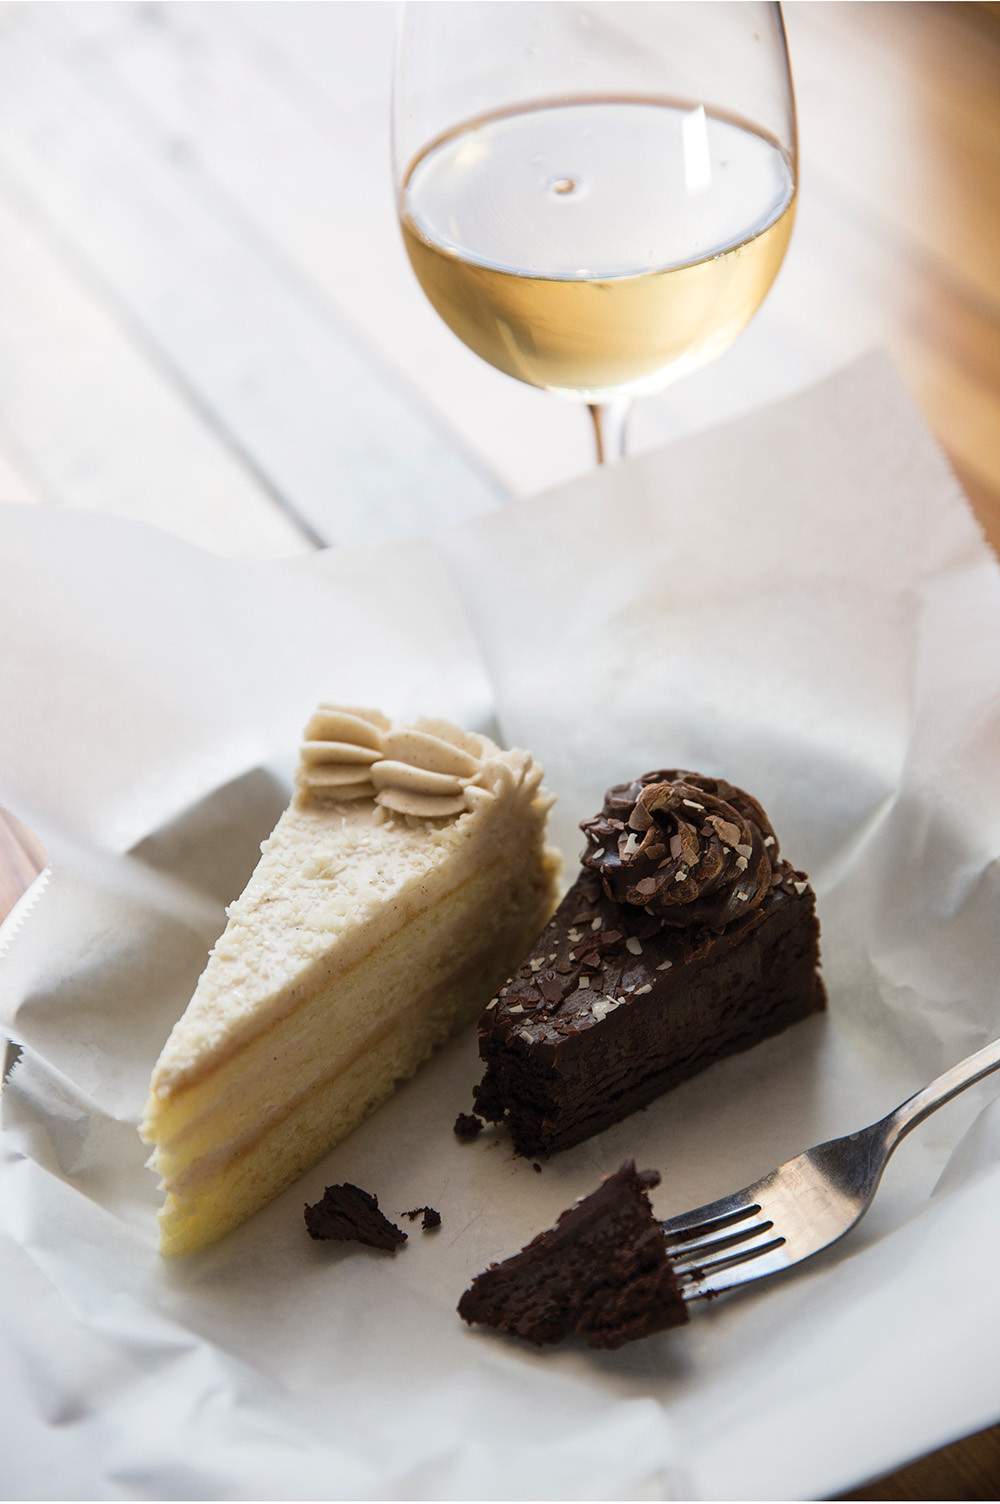 dessert for 2, one slice of cream cake, one slice of chocolate cake, with a glass of white wine